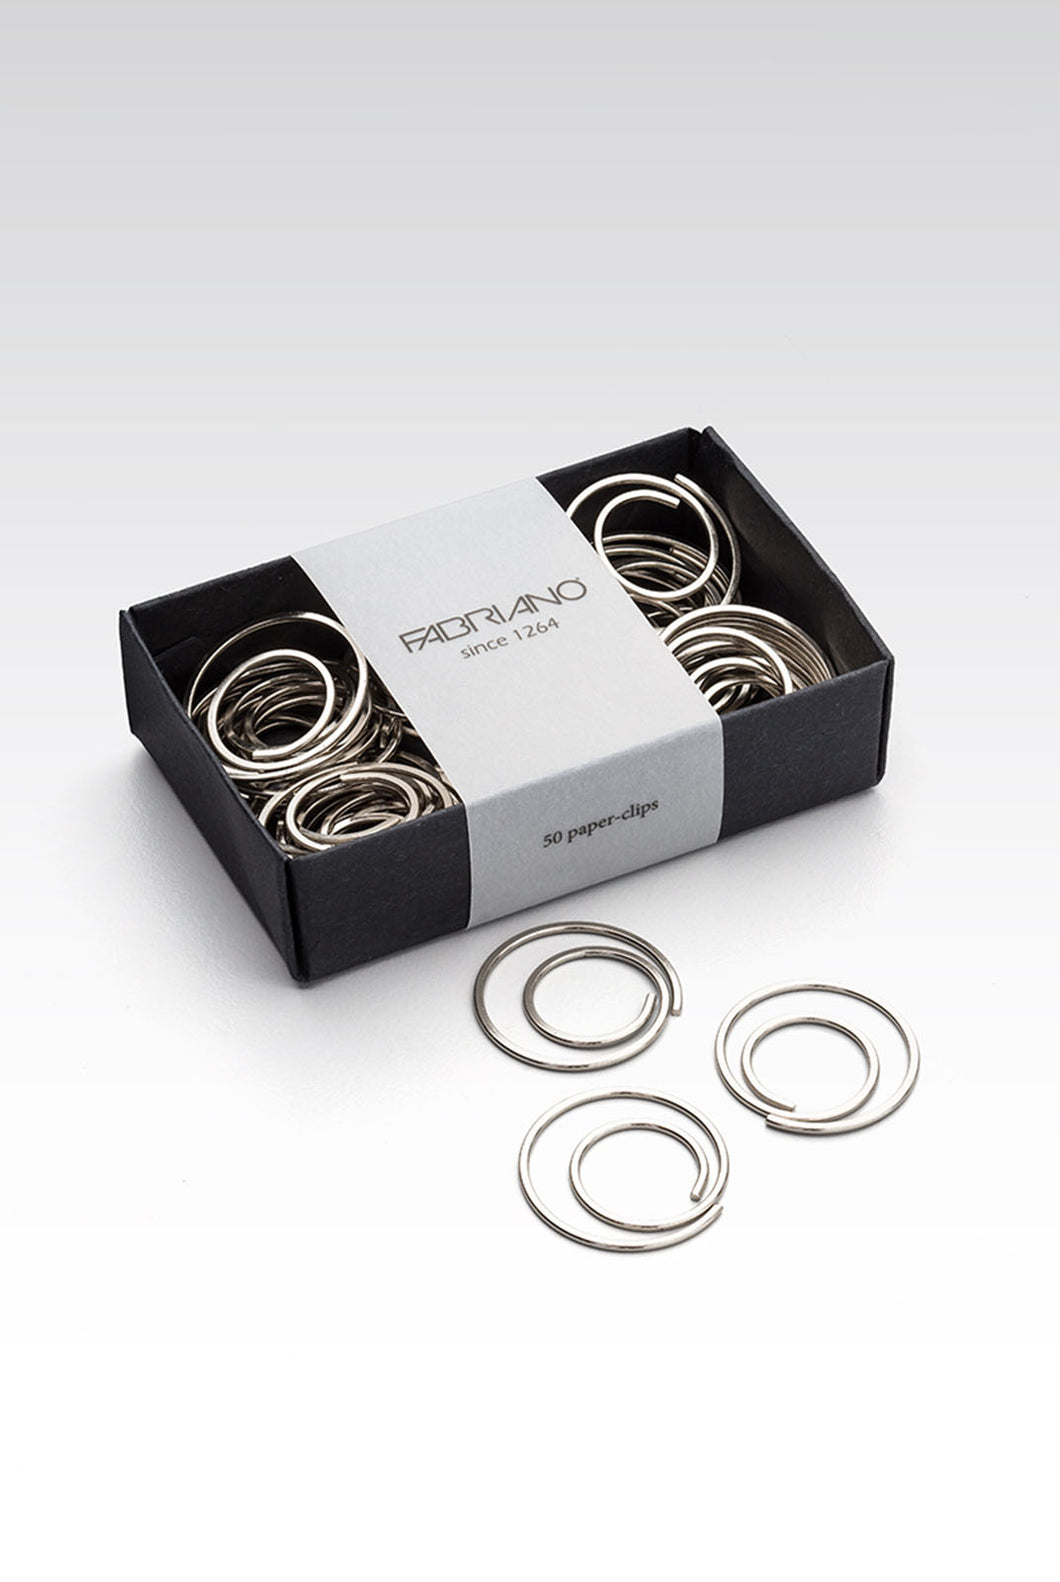 Fabriano Boutique - Spiral Paperclips - Box of 50 - Silver